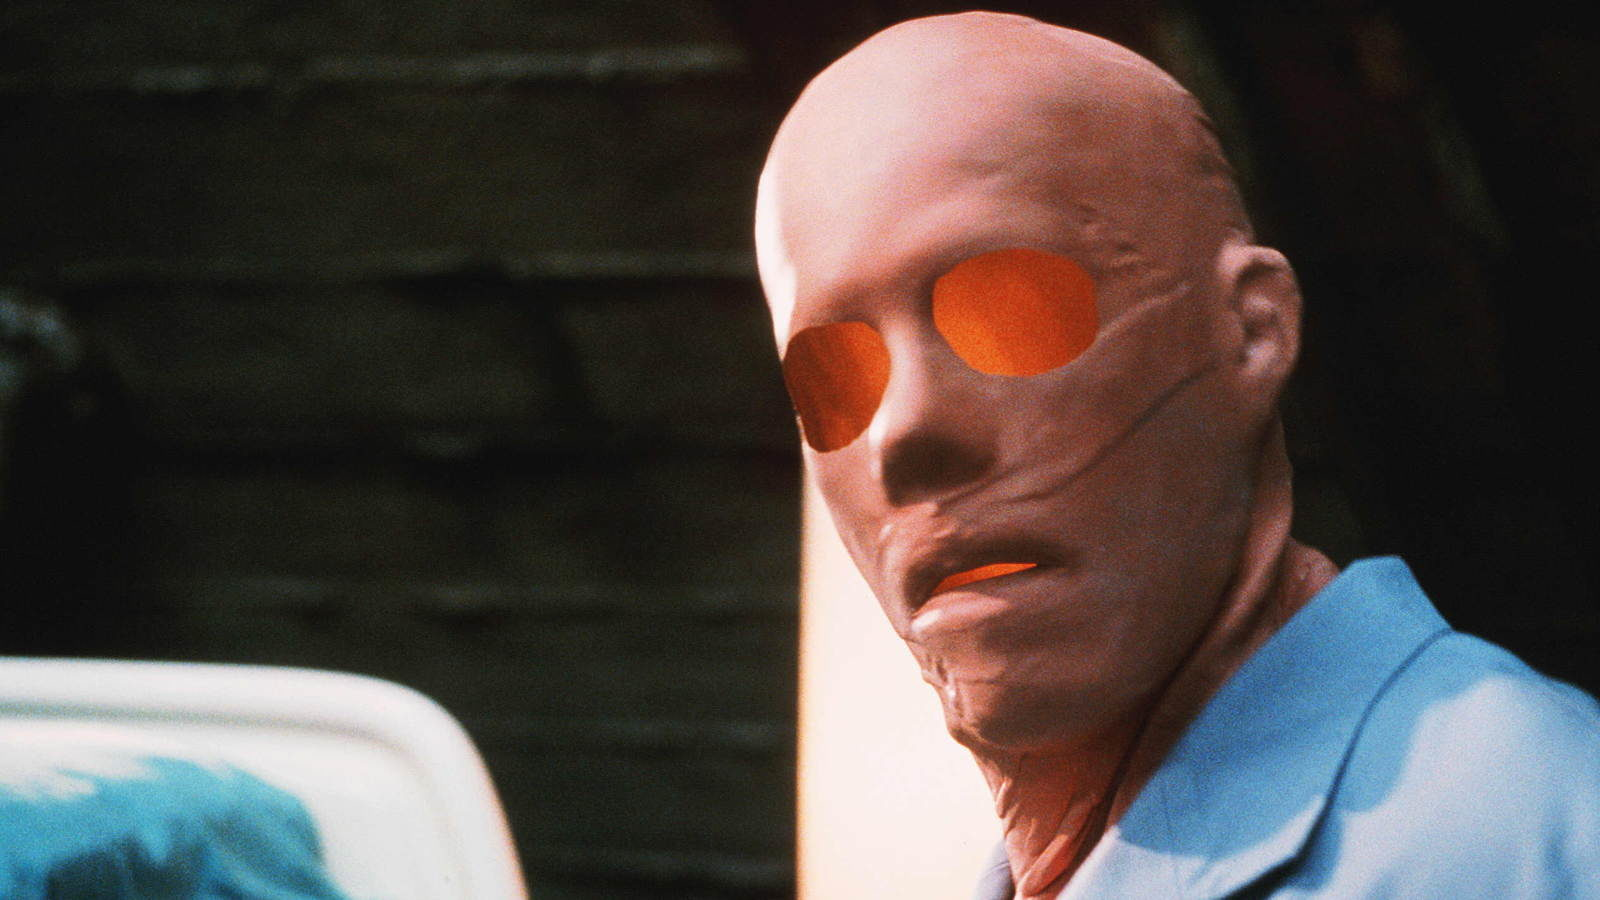 Hollow Man 2000 Kevin Bacon invisible mask